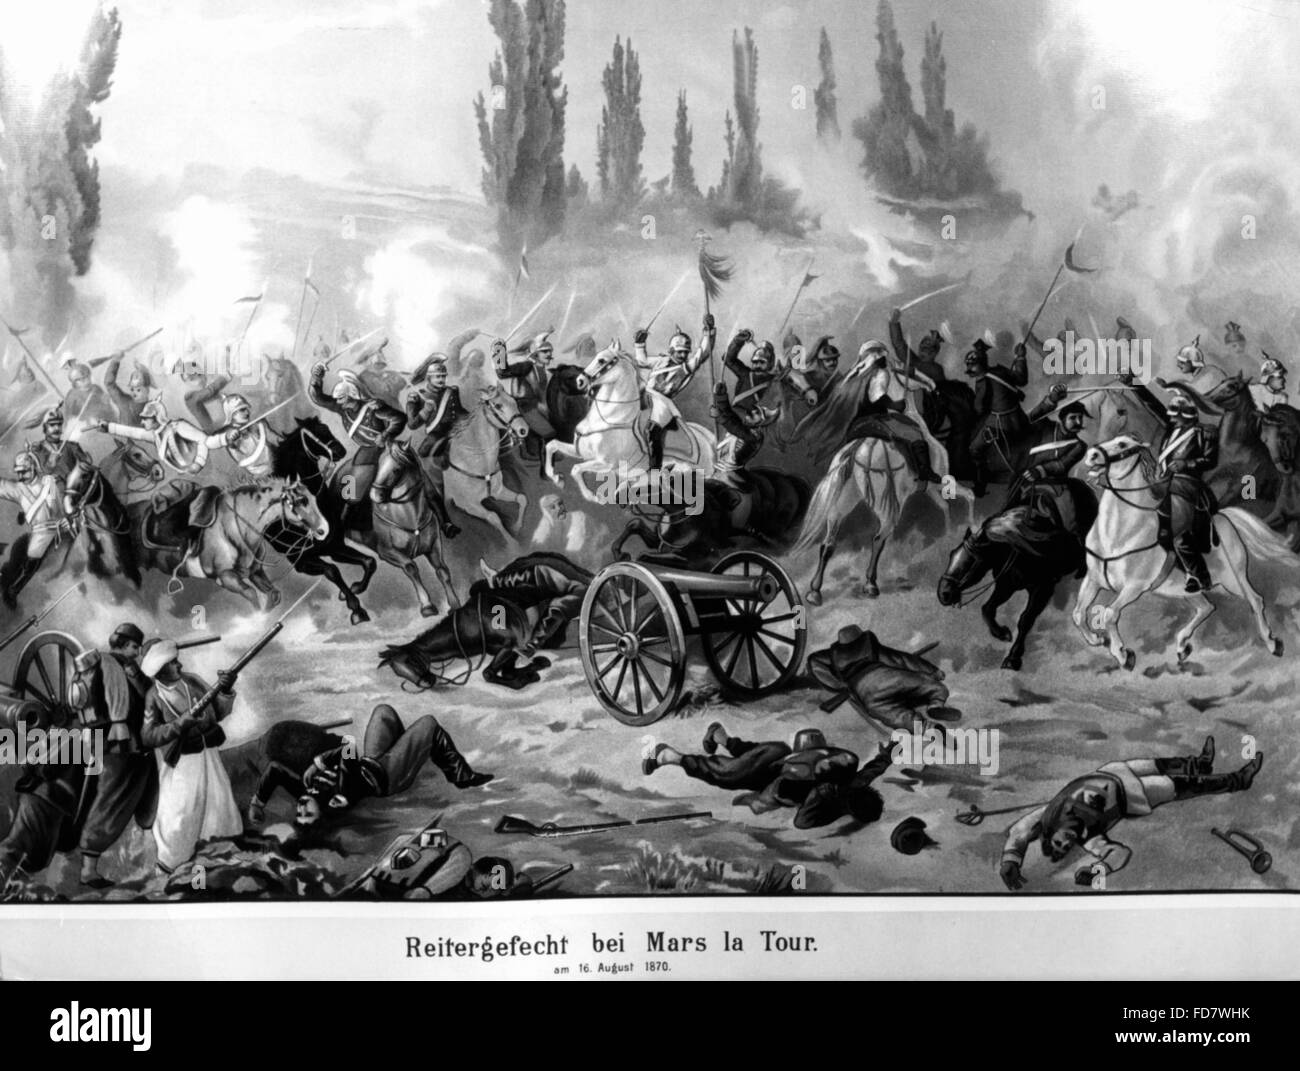 Cavalry fight at Mars la Tour during the Franco-German War, 16.08.1870 - Stock Image